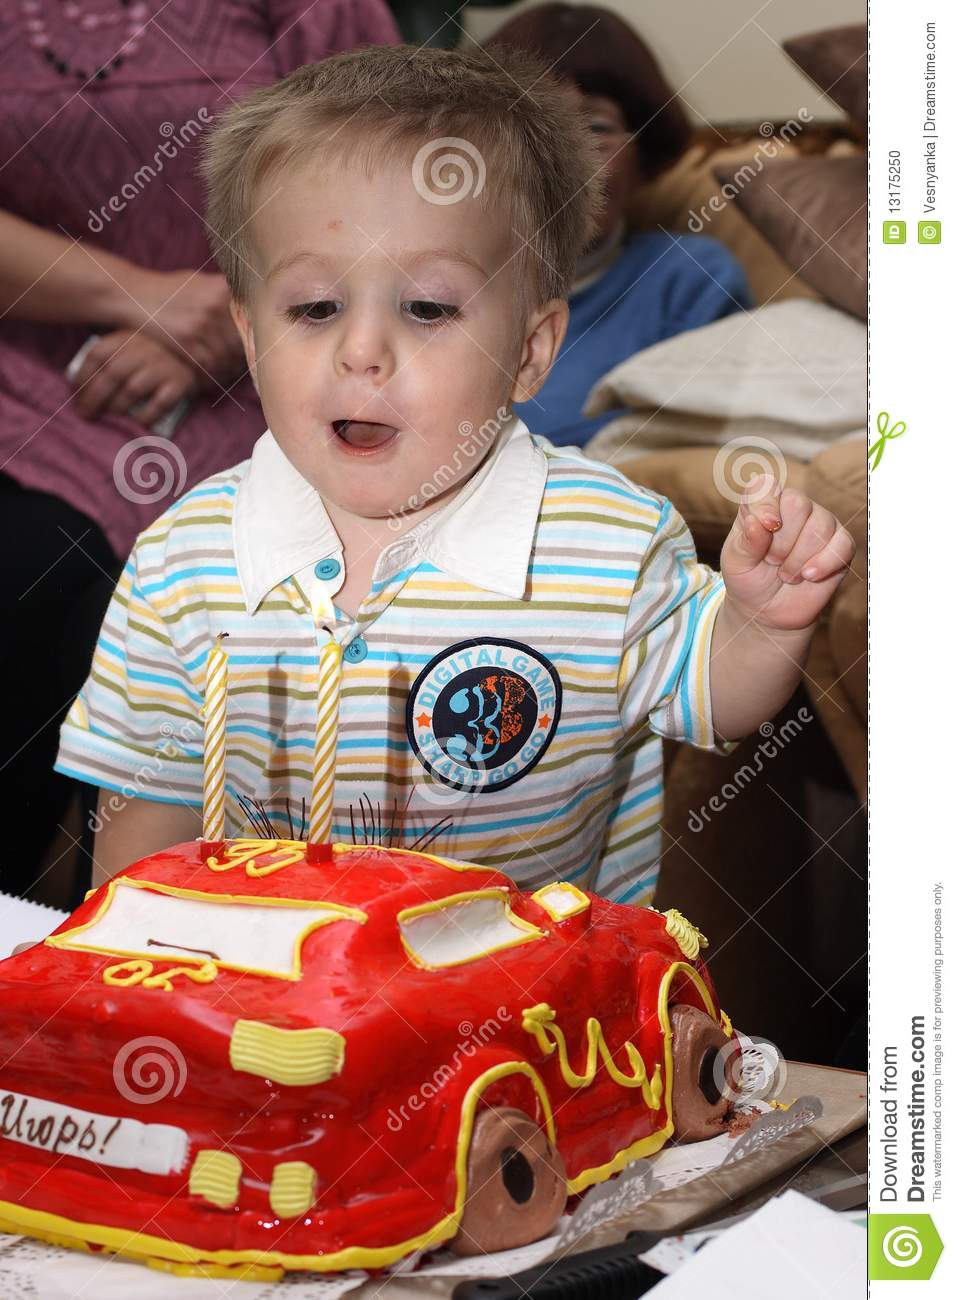 2 Years Old Little Boy Celebrating Birthday Ready To Snuff Out The Candle On Cake